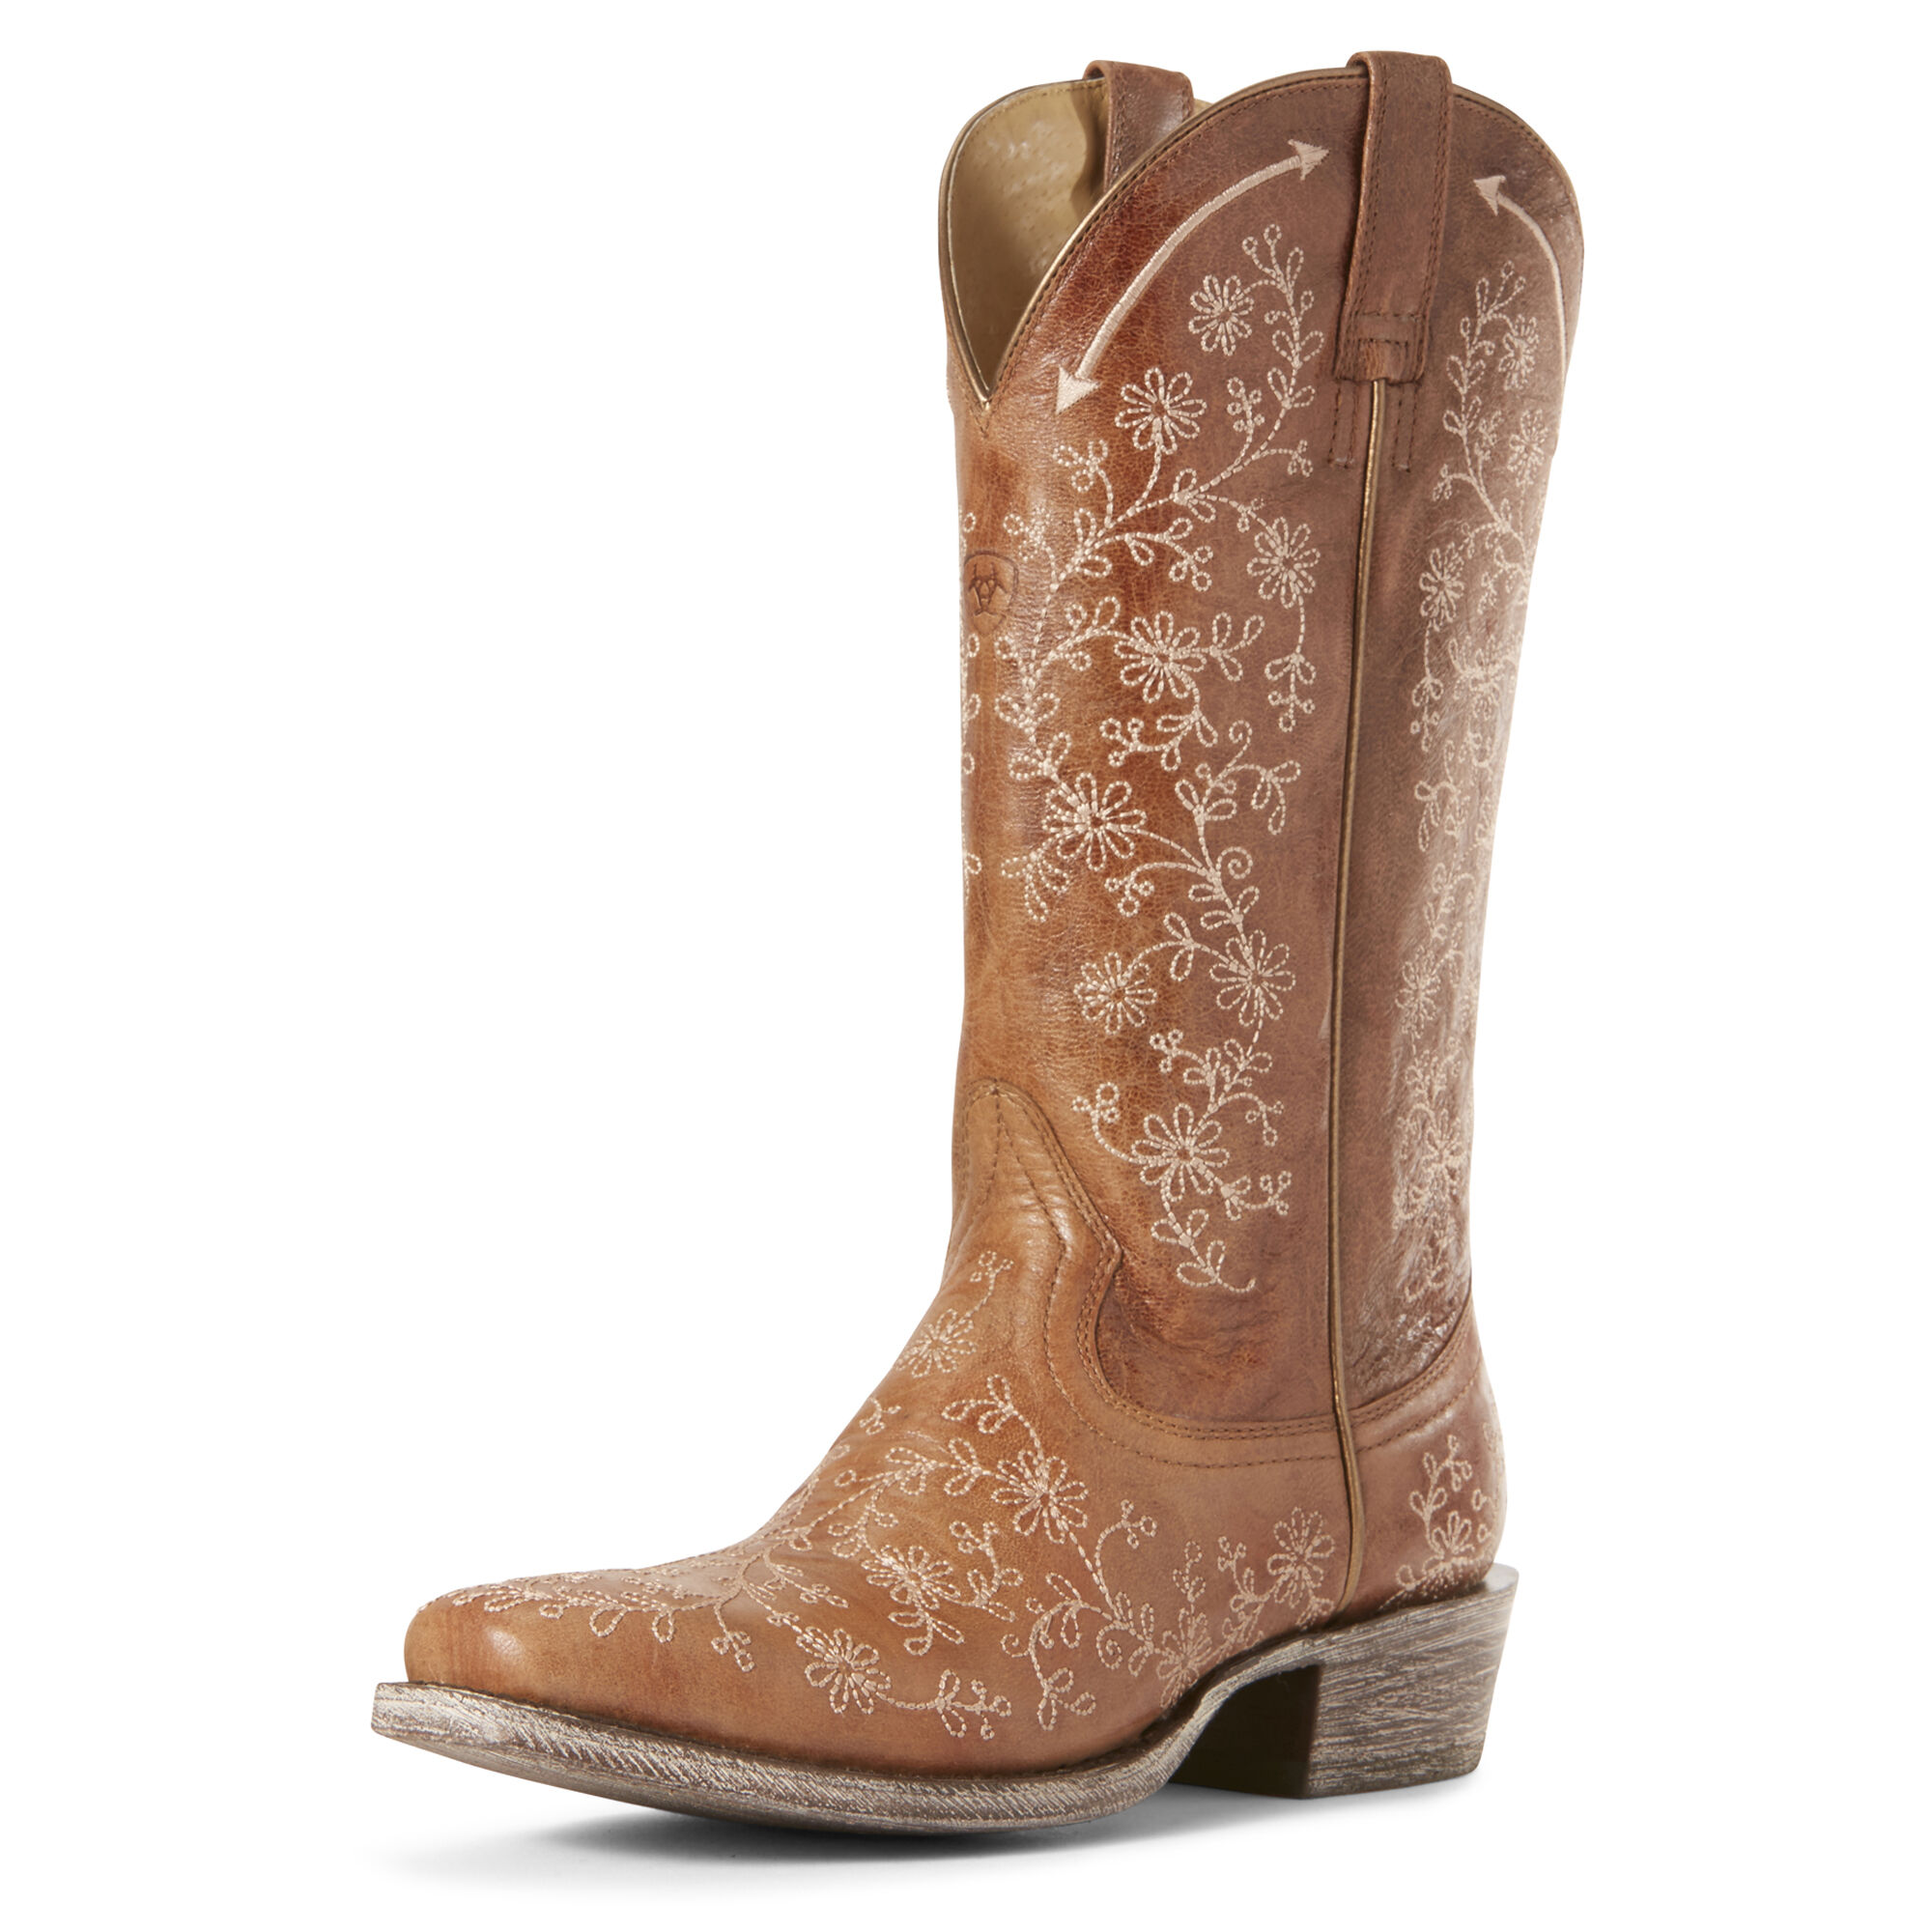 And Footwear Shop Boots By Quality Ariat Women's 76ybfg